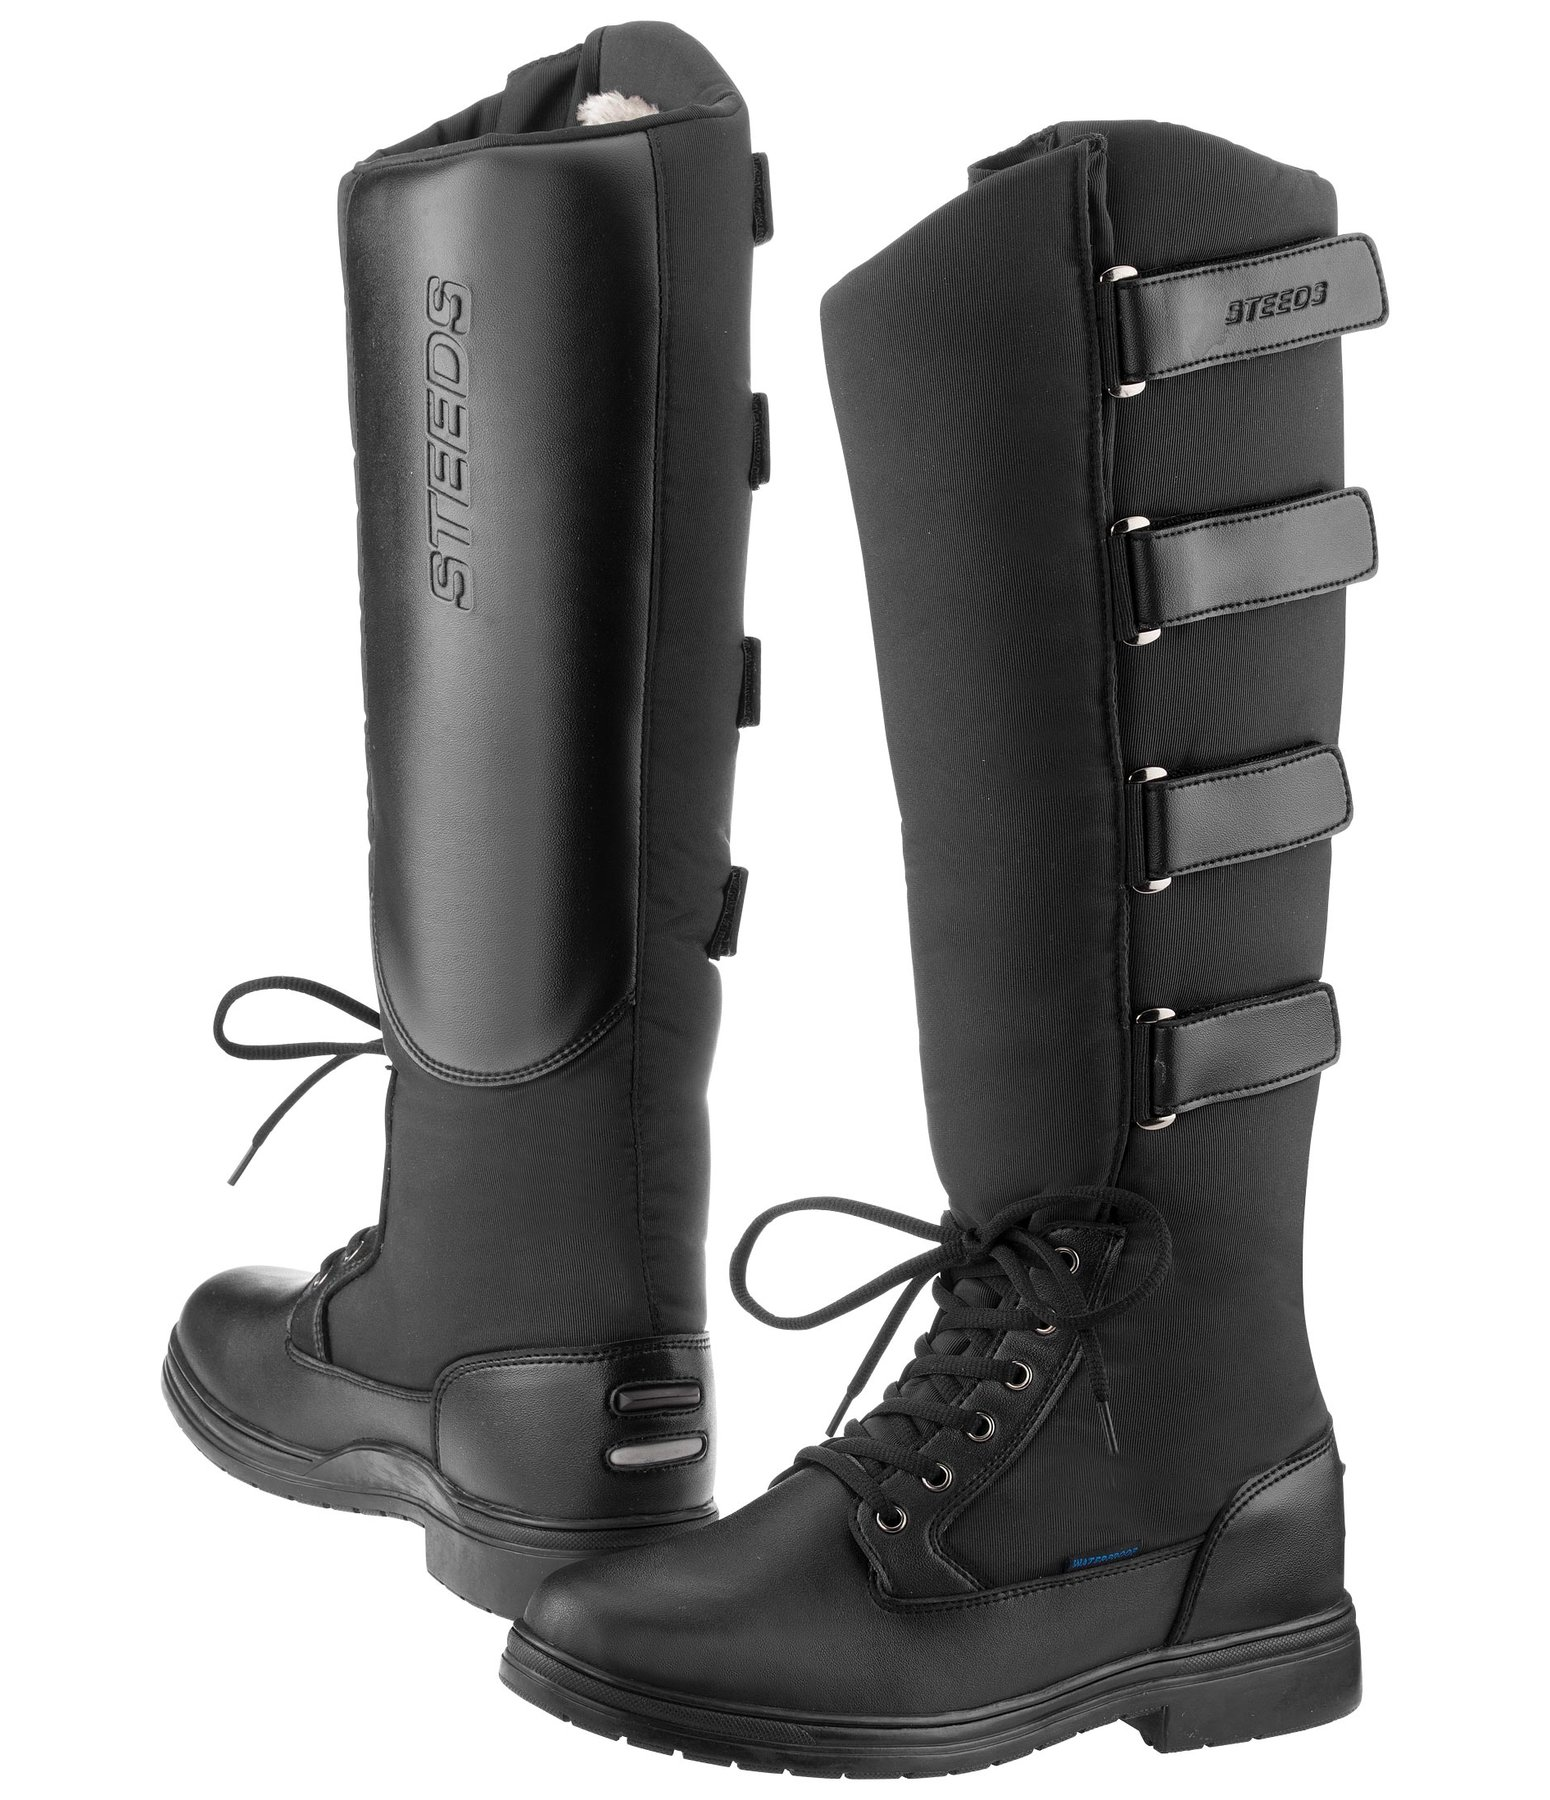 Thermostiefel Winter Rider